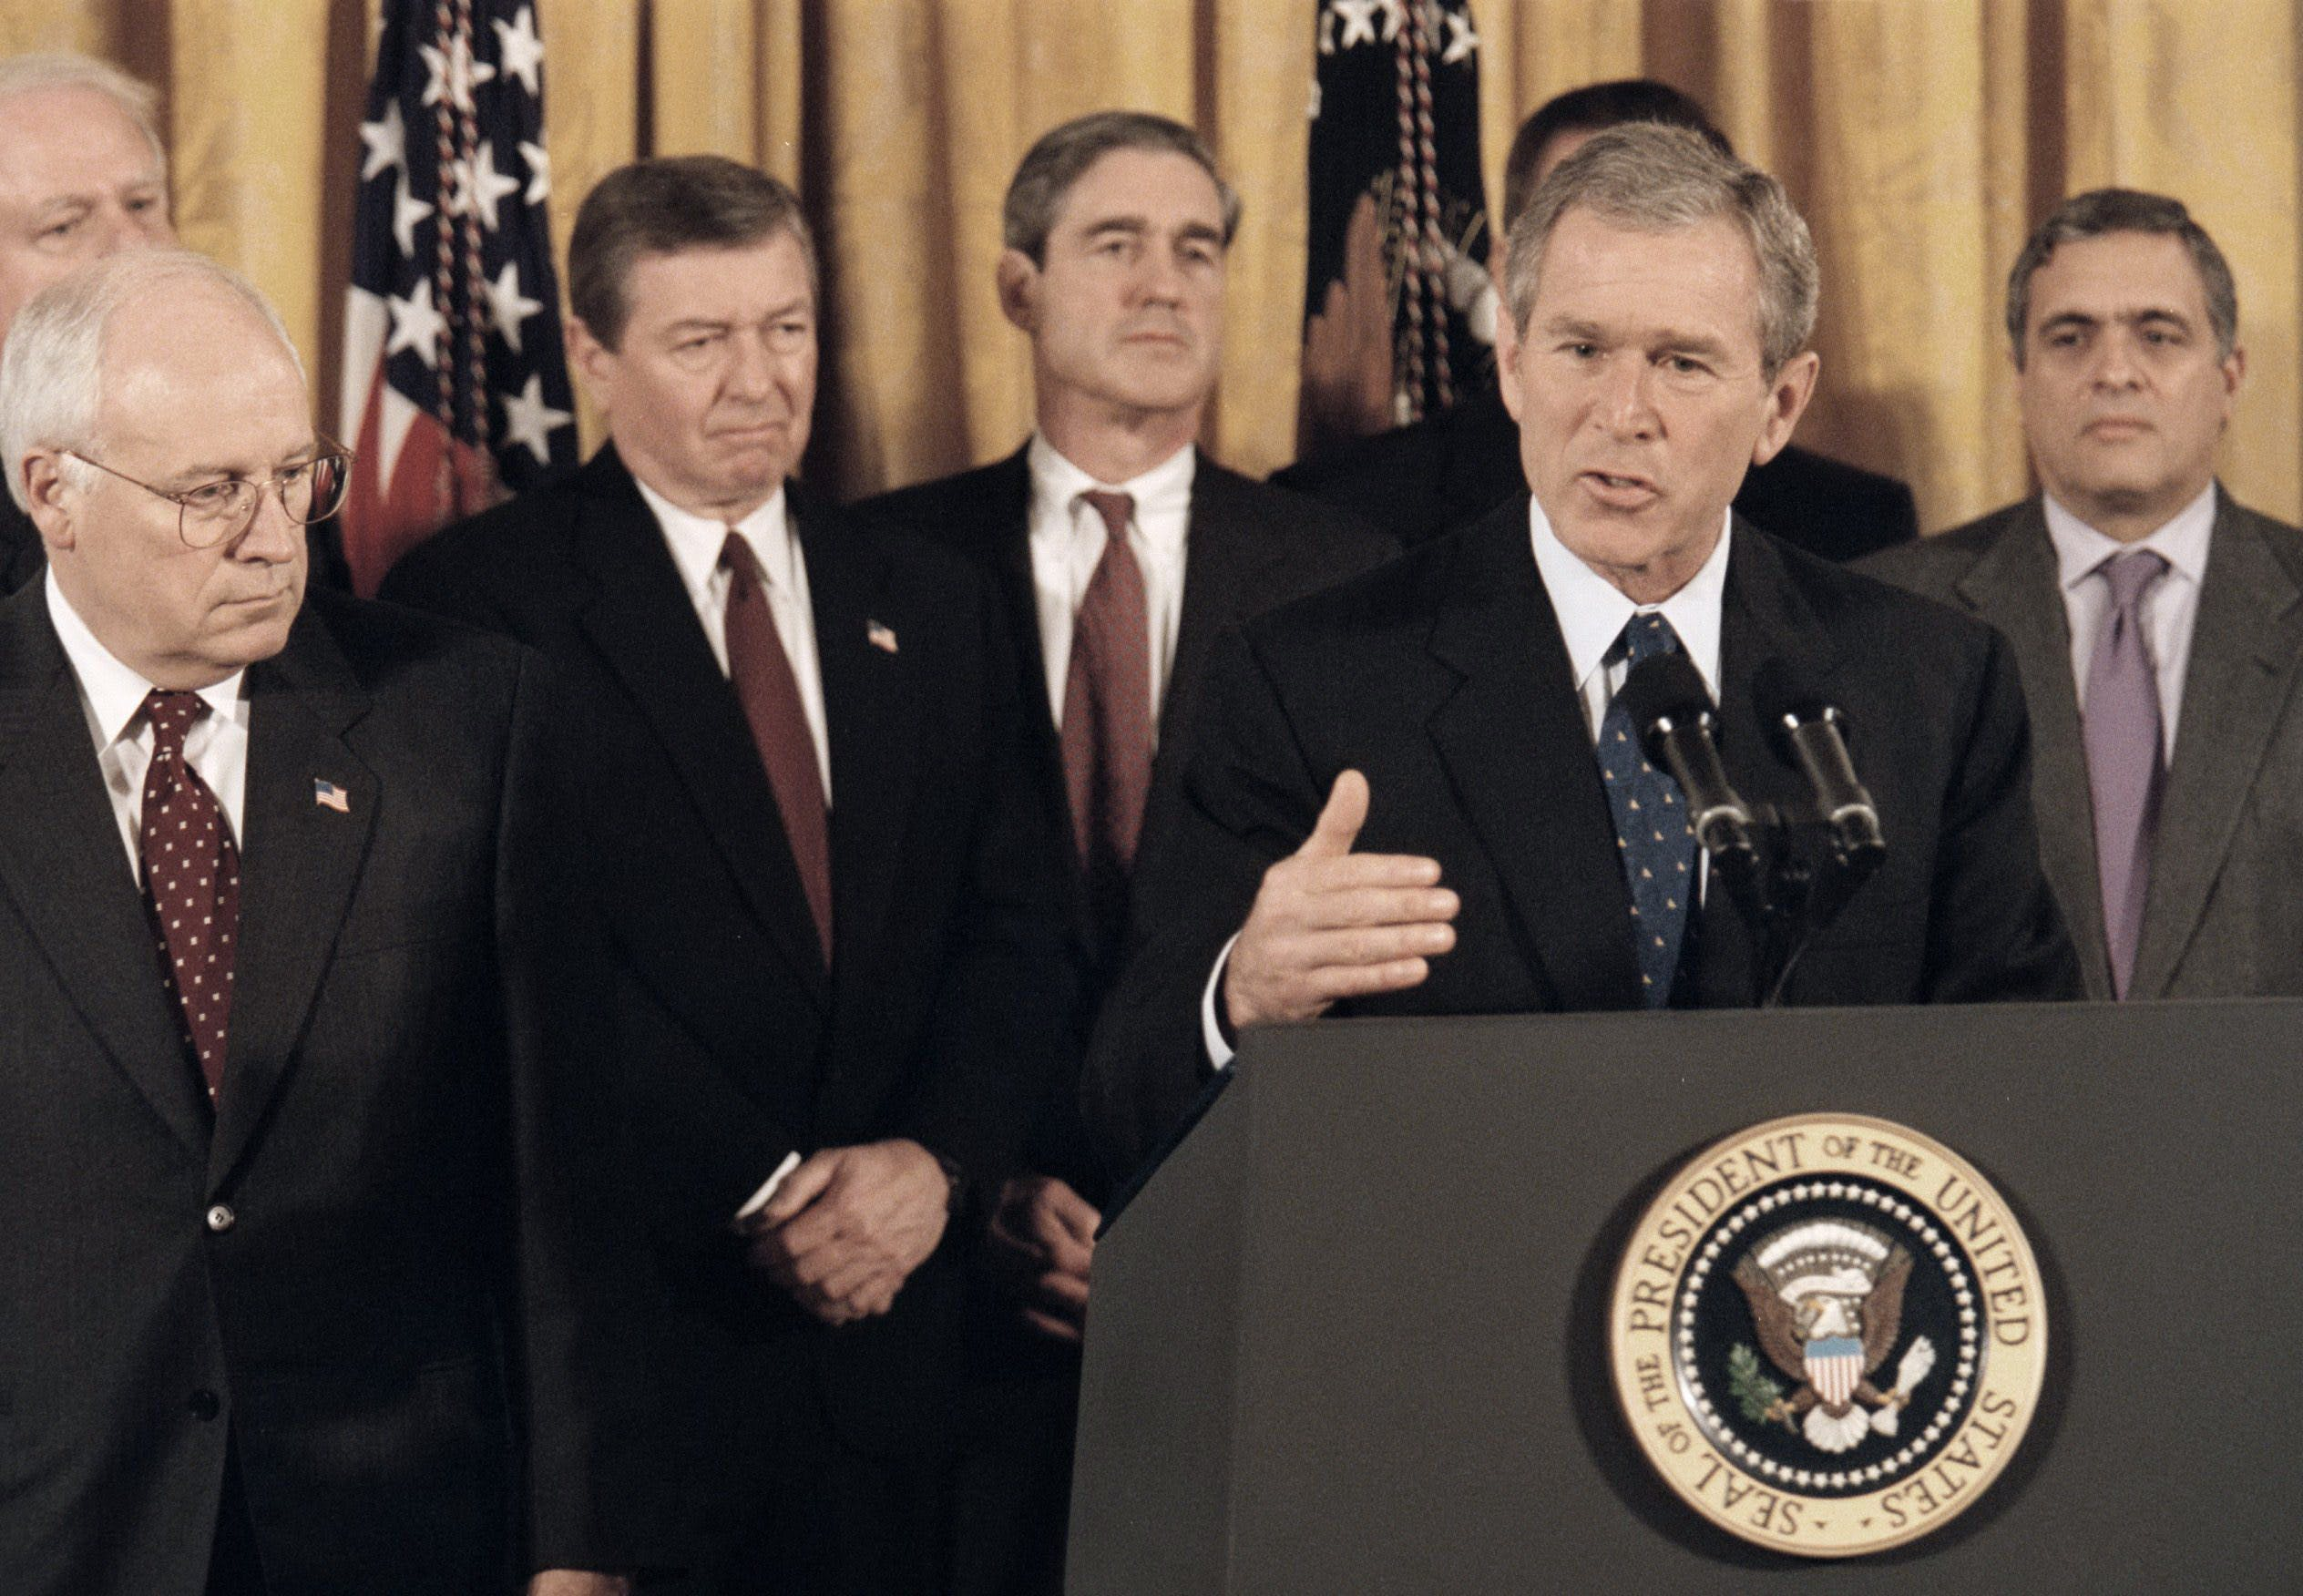 WASHINGTON, DC - OCTOBER 26 - President George Bush delivers speech before signing Patriot Act Anti-Terrorism Bill at the White House. Shown next to Bush, Vice President Dick Cheney, shown in background (L-R) Rep. James Sensenbrenner, Attorney General John Ashcroft, FBI Director Robert Mueller and CIA Director George Tenet. (Photo by Rich Lipski/The Washington Post via Getty Images)